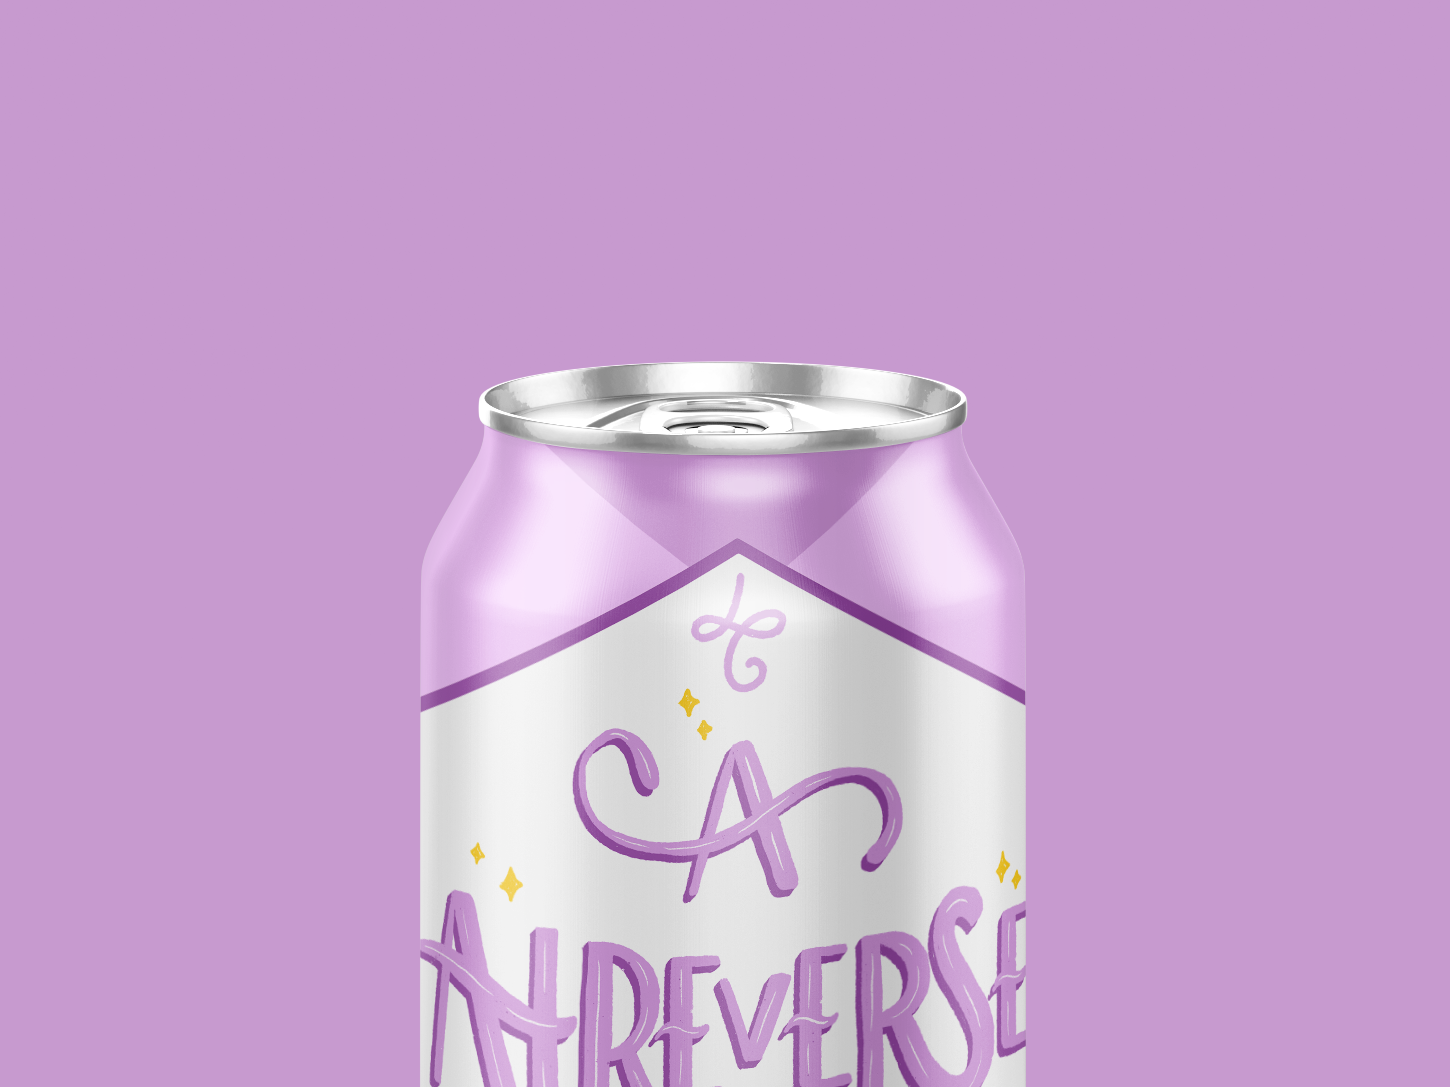 A Atreverse Can - Lettering courage graphic design calligraphy drink can mockup design lettering